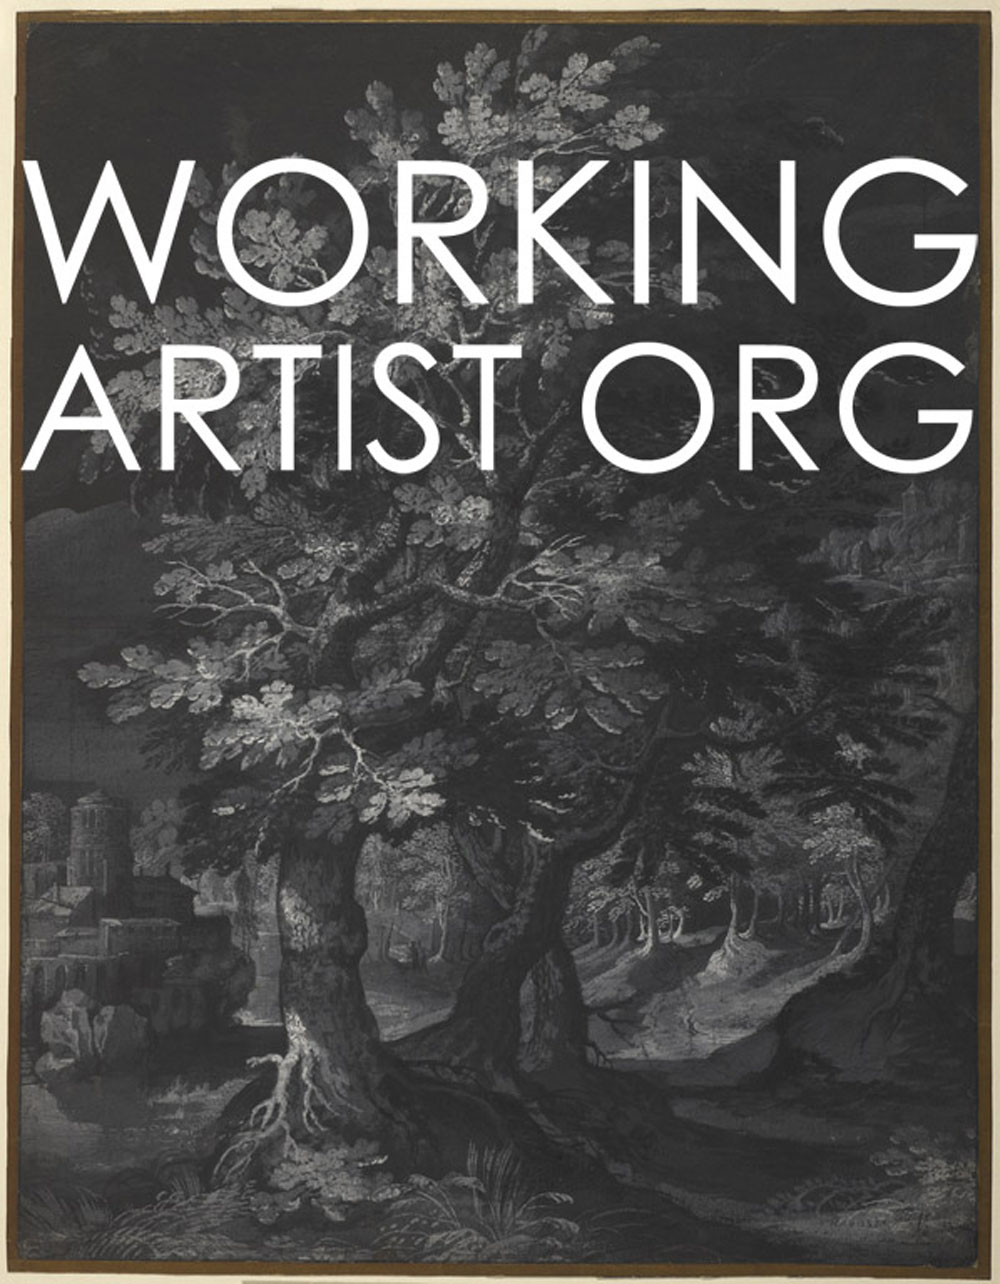 The Working Artist Photography Award 2017